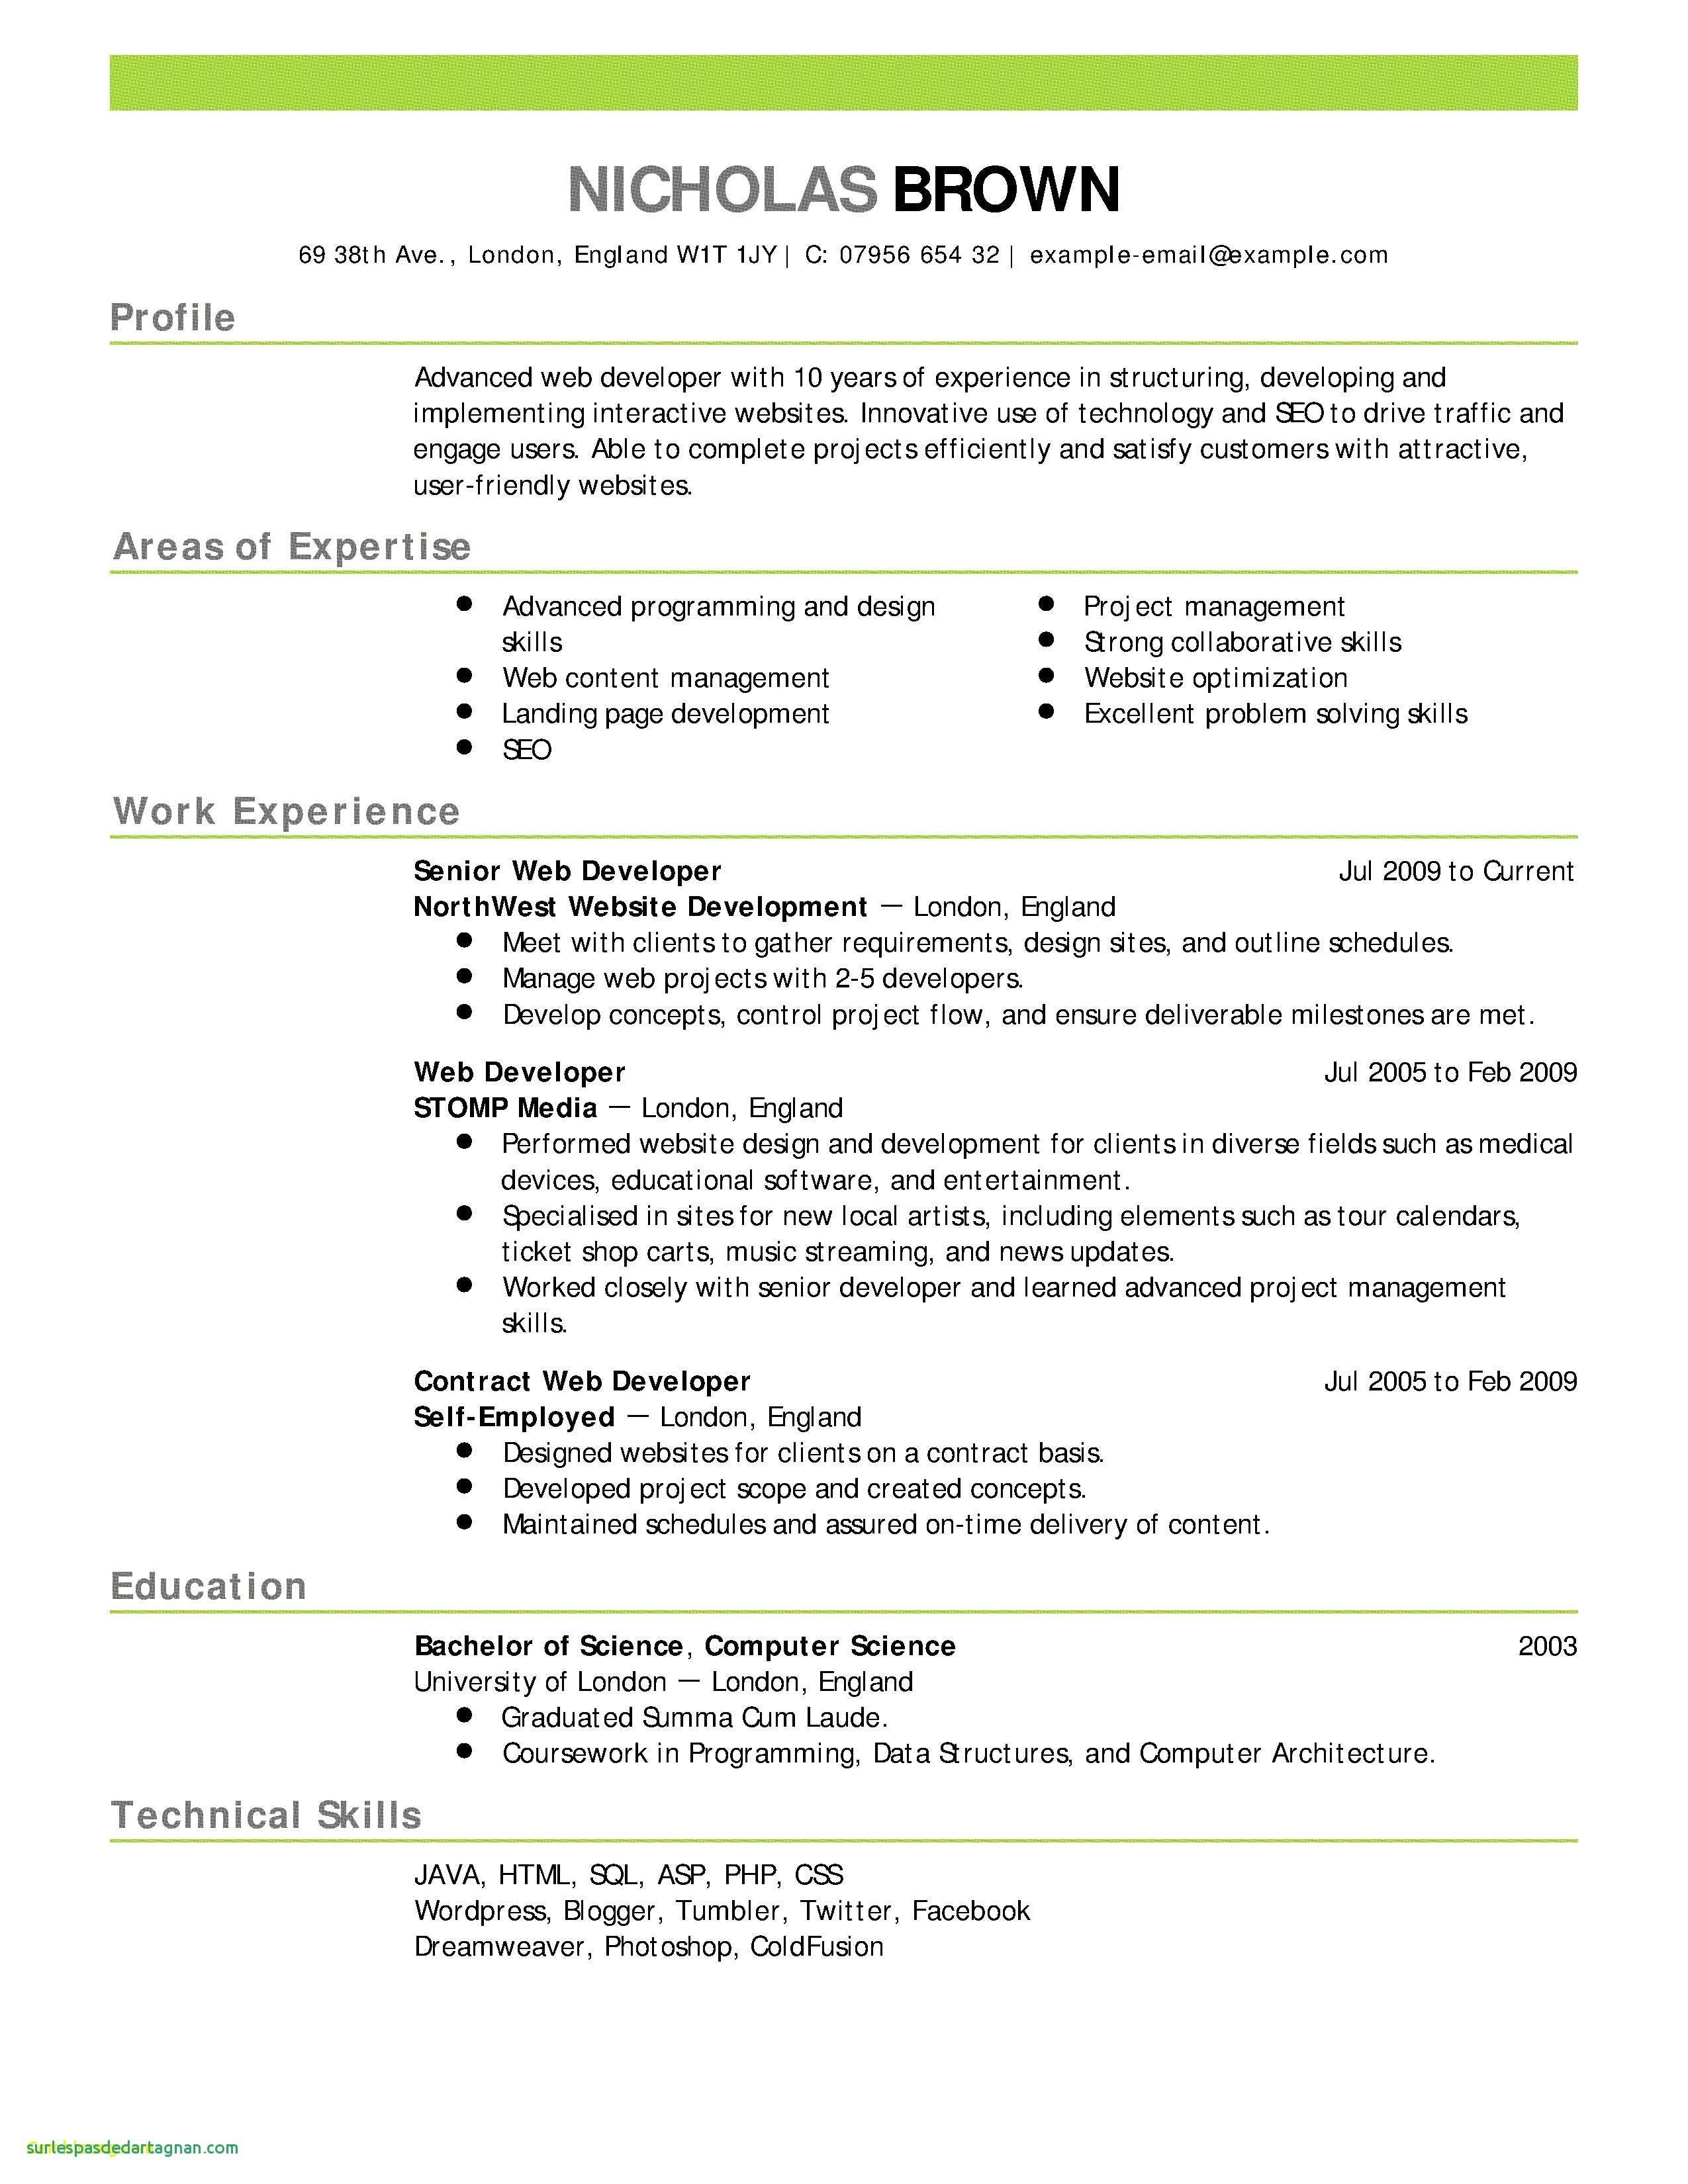 informatica cloud developer resume Collection-Data Visualization Resume Fresh New Blank Resume Format Resume Templats Unique Formatted Resume 0d 3-m